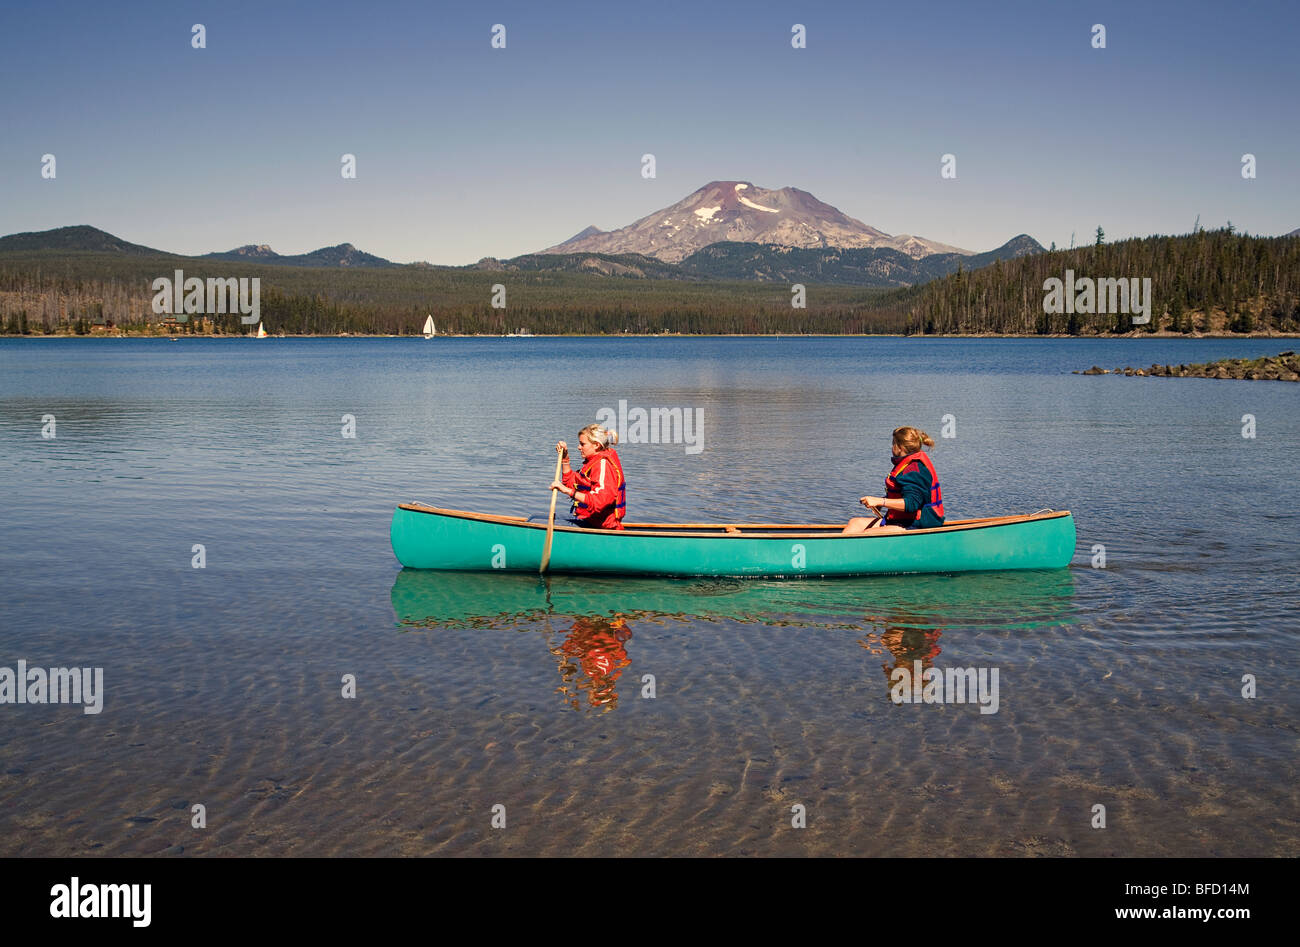 Two teen aged girls in a canoe on Elk Lake in the Oregon Cascade Mountains along the Cascade Lakes Highway - Stock Image